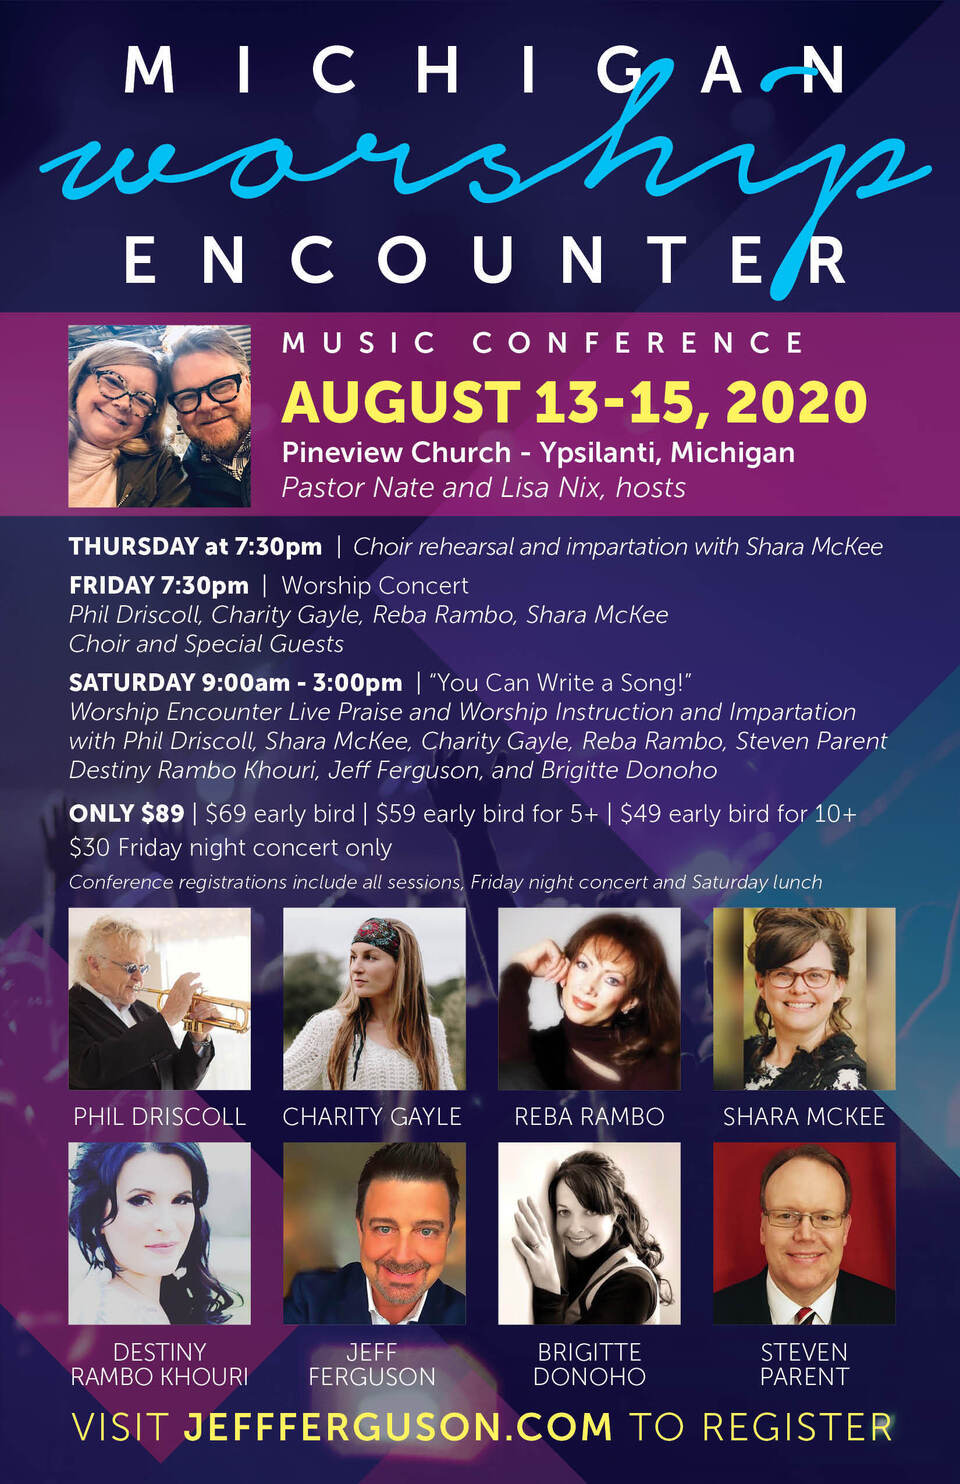 Michigan worship encounter flyer